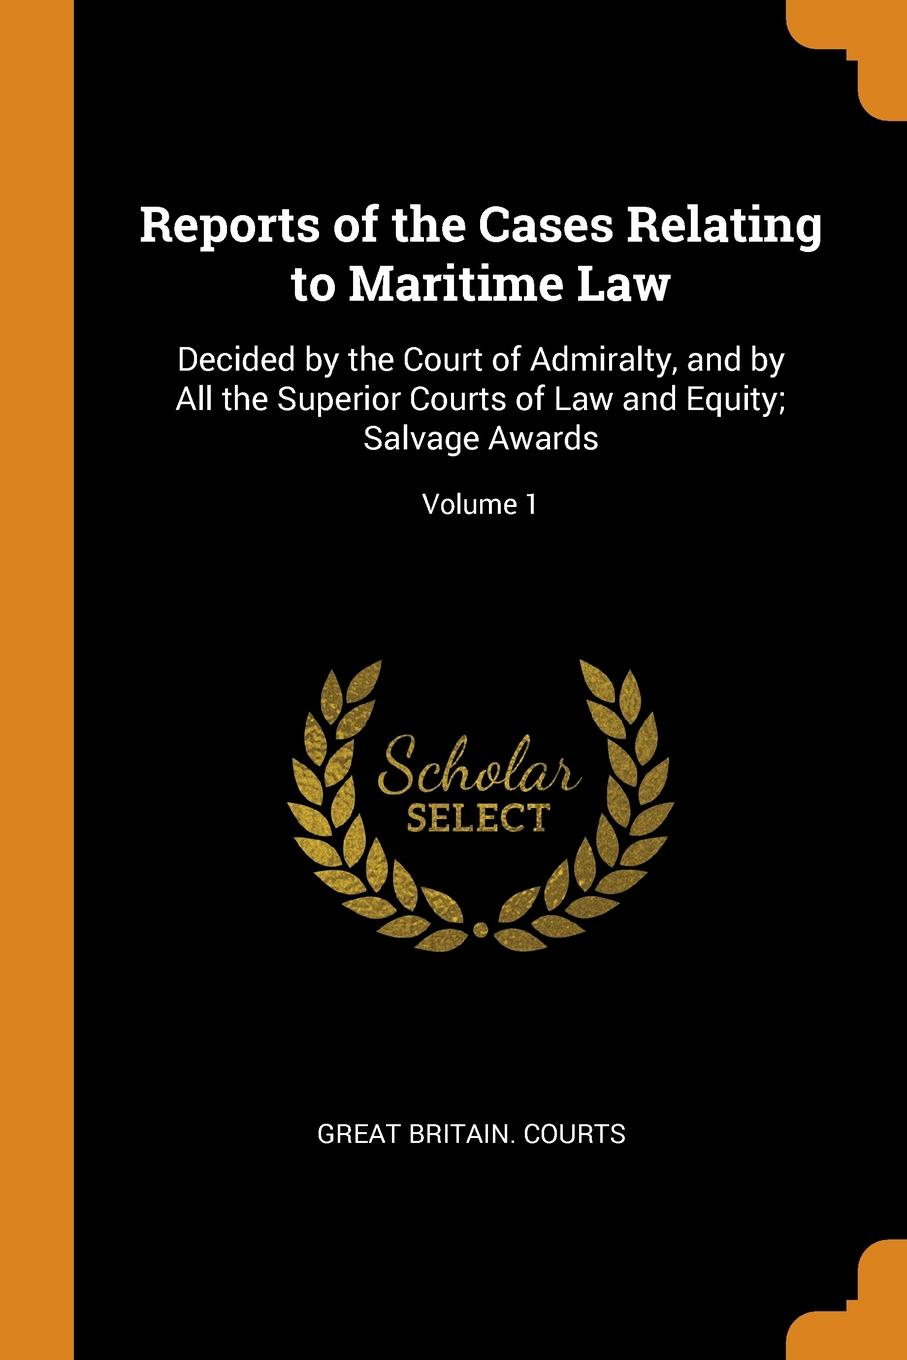 Reports of the Cases Relating to Maritime Law. Decided by the Court of Admiralty, and by All the Superior Courts of Law and Equity; Salvage Awards; Volume 1.